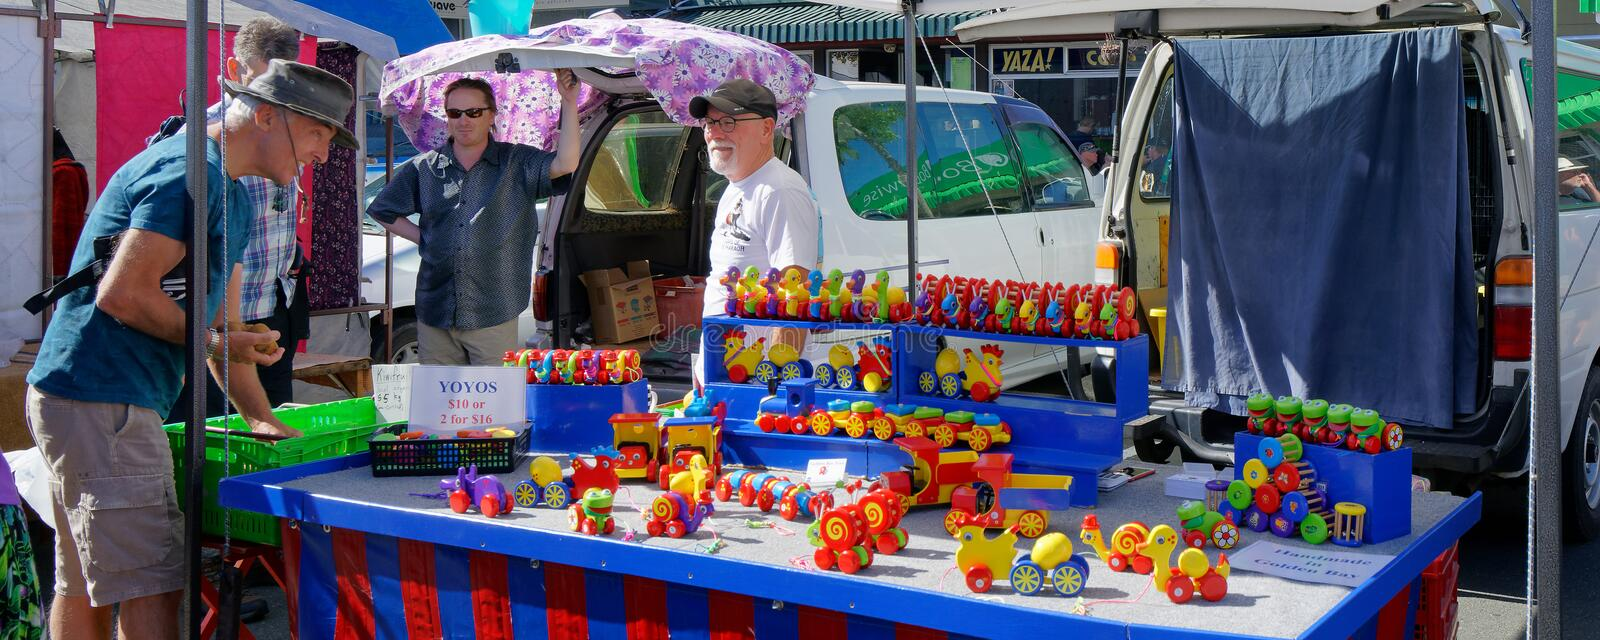 Big boy enthralled by the painted wooden toys on a Nelson market stall royalty free stock photo